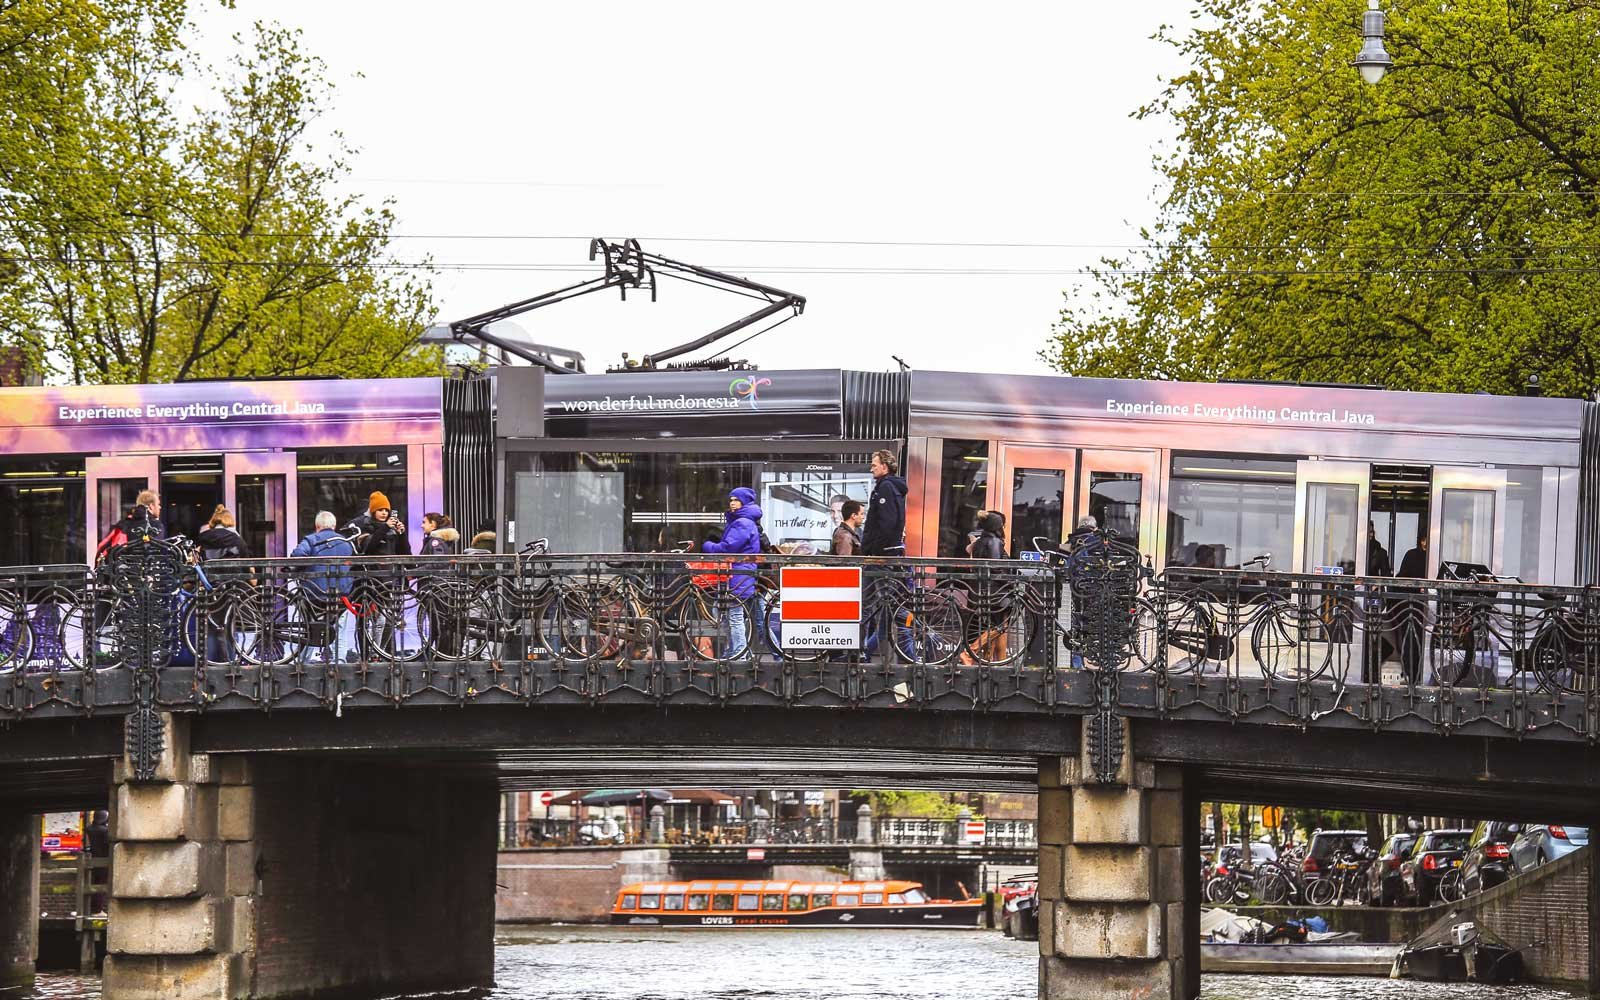 Public Transportation in Amsterdam